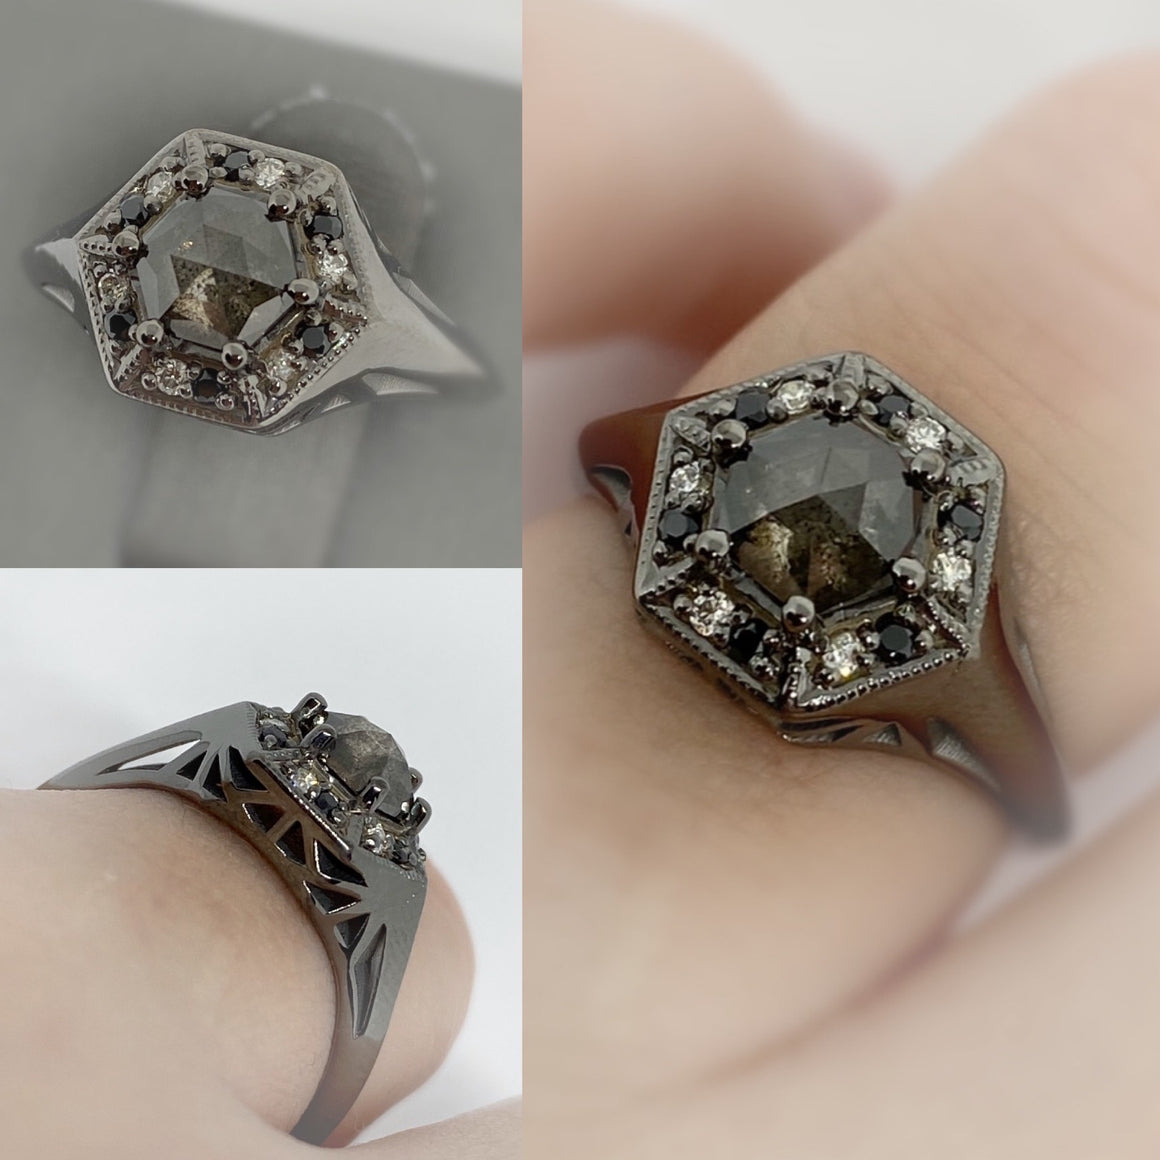 May Ring of the Month: UDINC0698